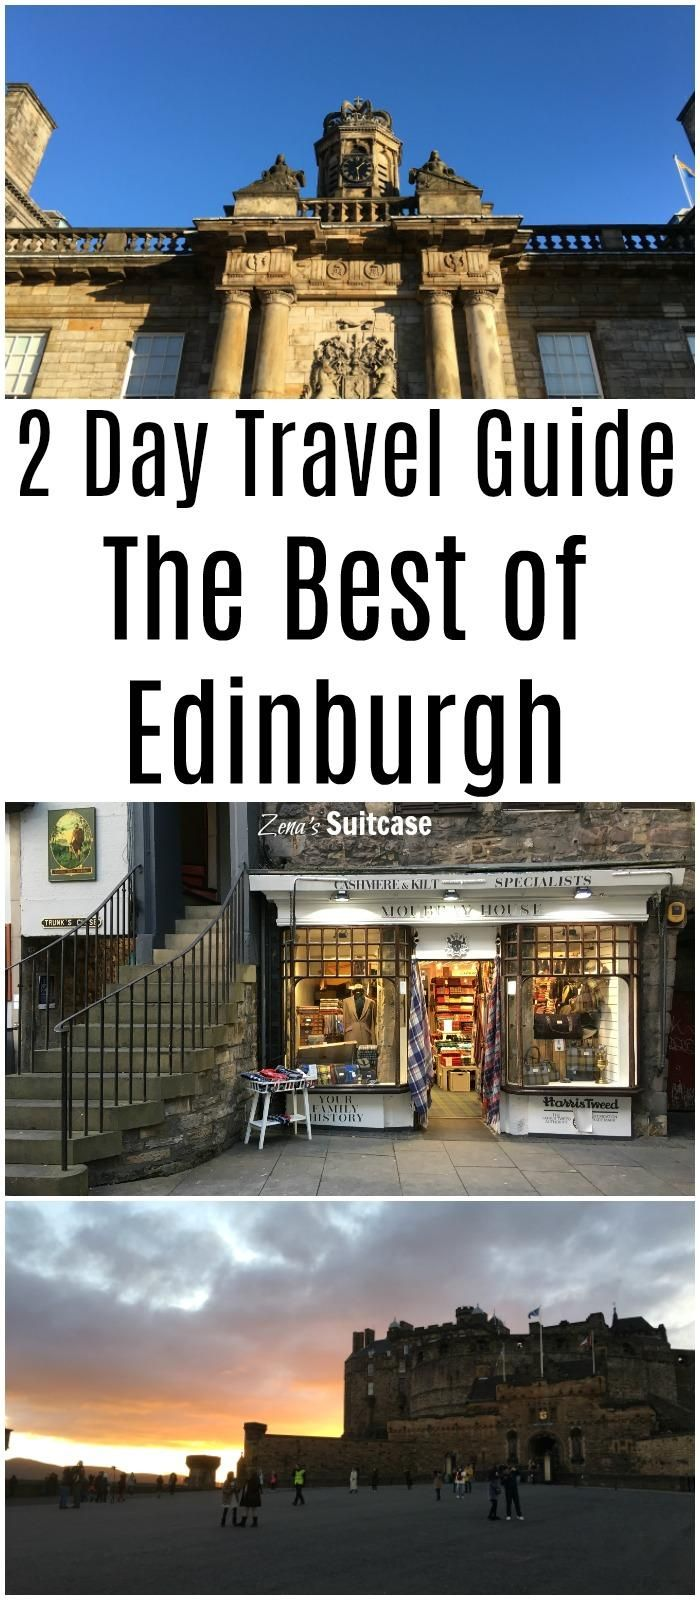 2 Day Travel Guide For Visiting Edinburgh in Scotland. The best places to visit during a short city break in Scotland's capital #Edinburgh #Scotland #visitEdinburgh #travelguide